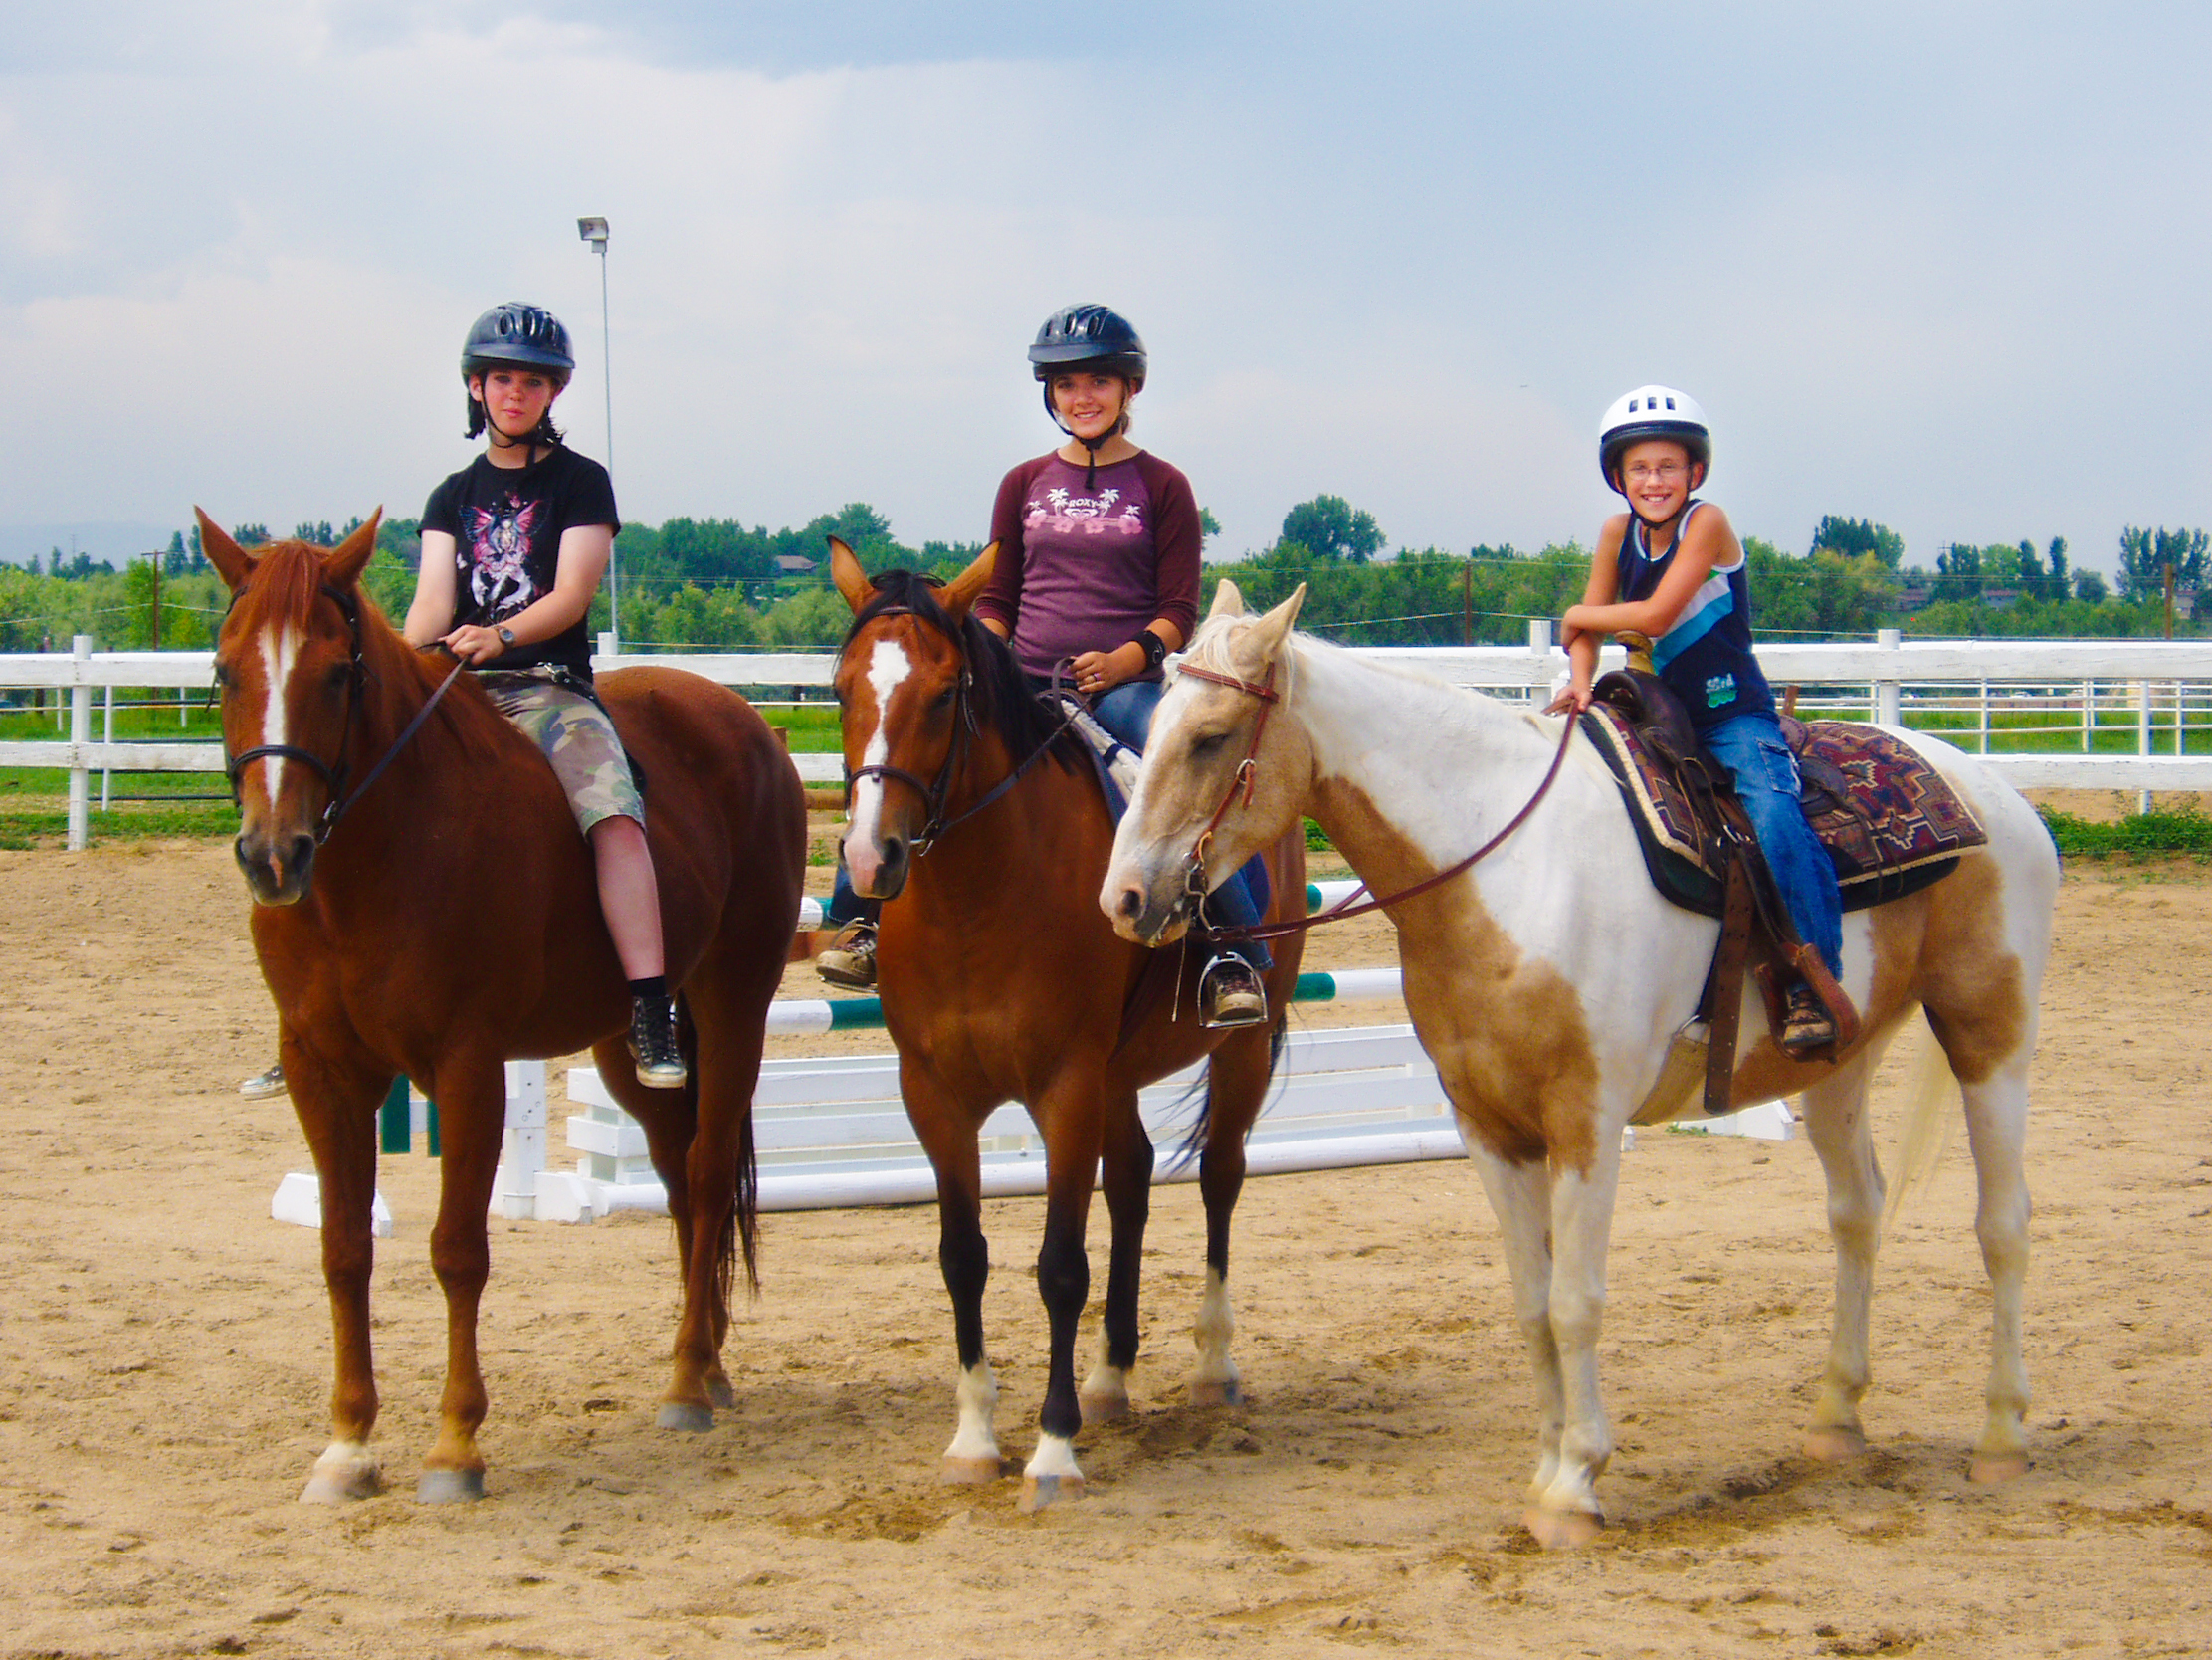 Camp Horse Riders - On Horses